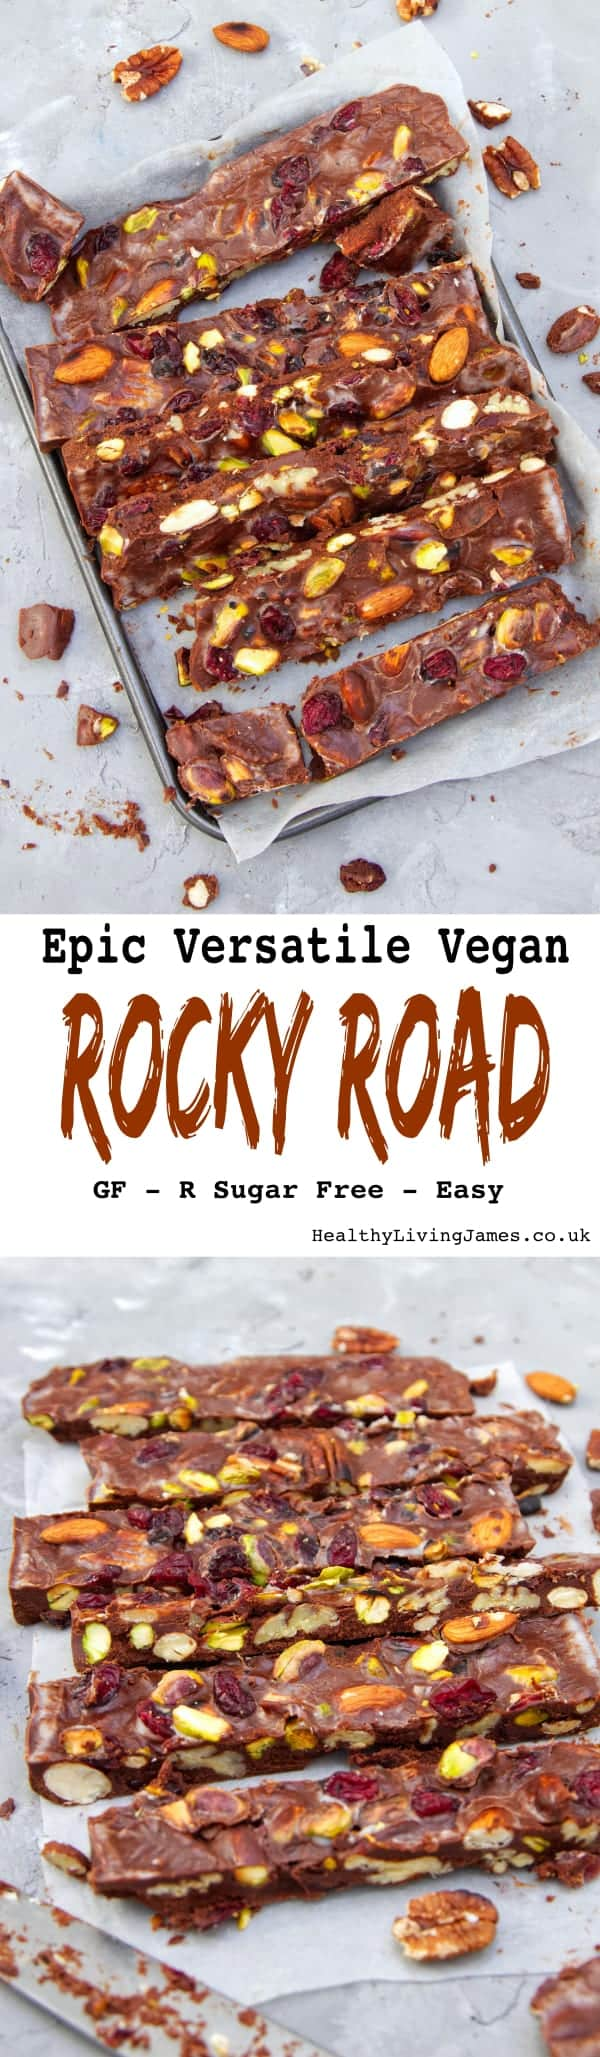 Epic Vegan Rocky Road Pin